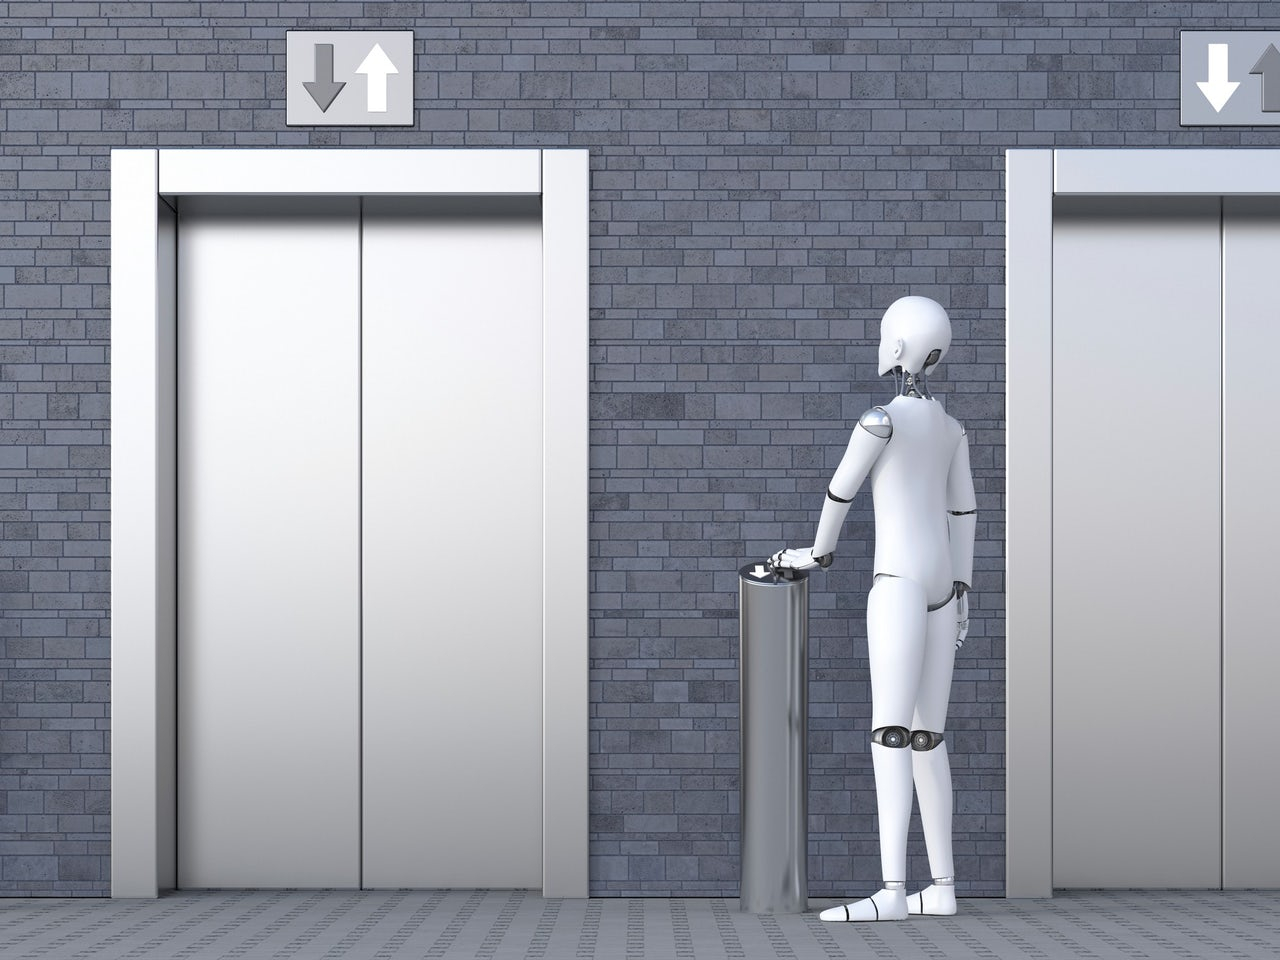 Robot waiting for elevator.